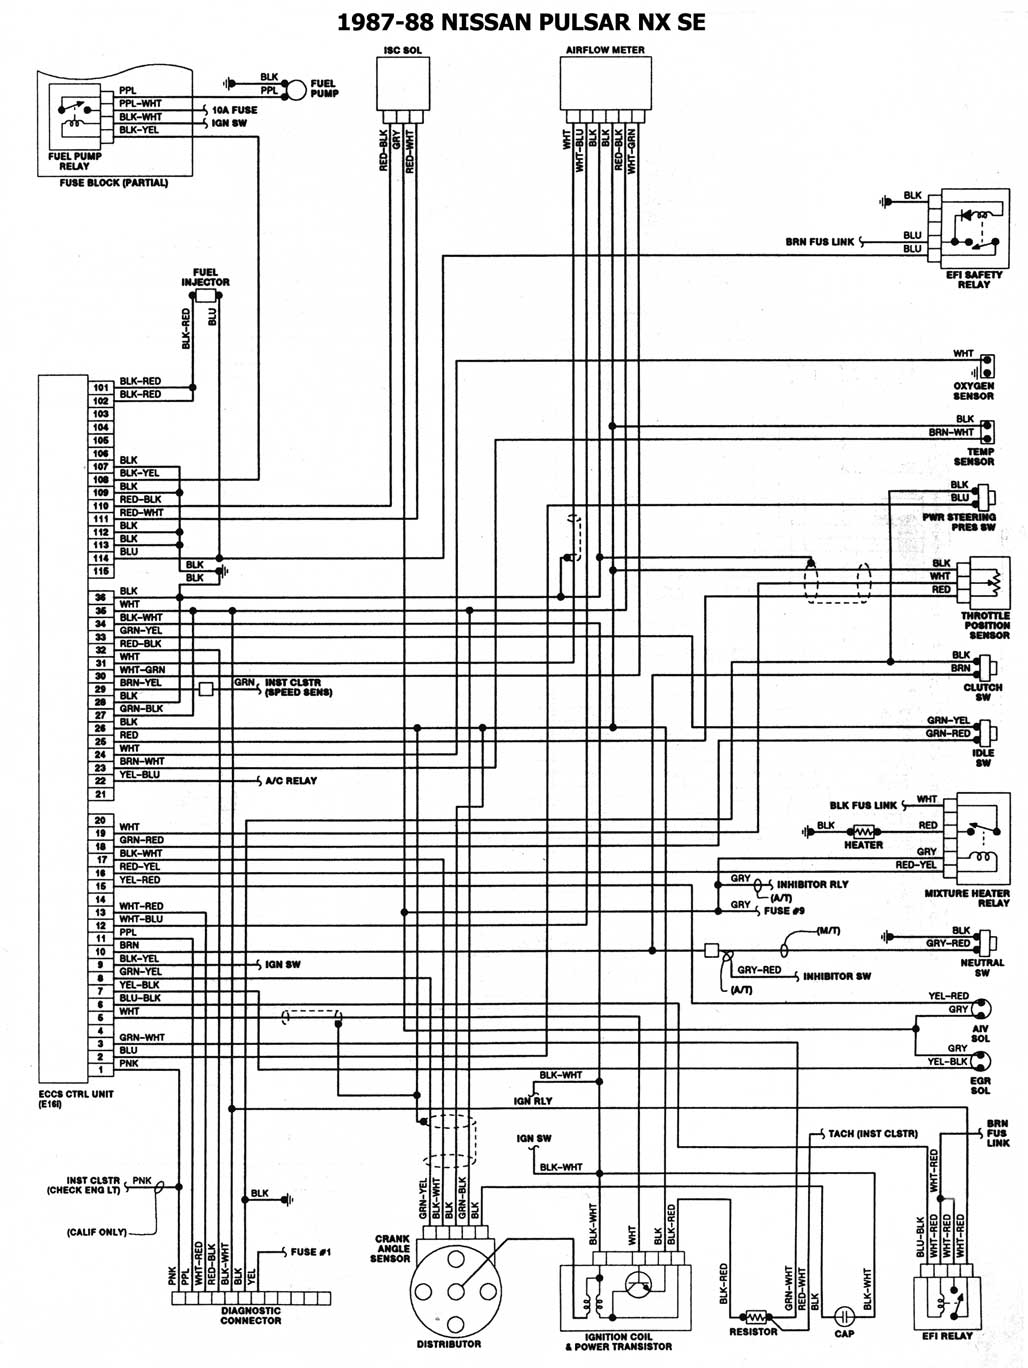 Diagram Manual De Diagrama De Nissan 240sx 90 Full